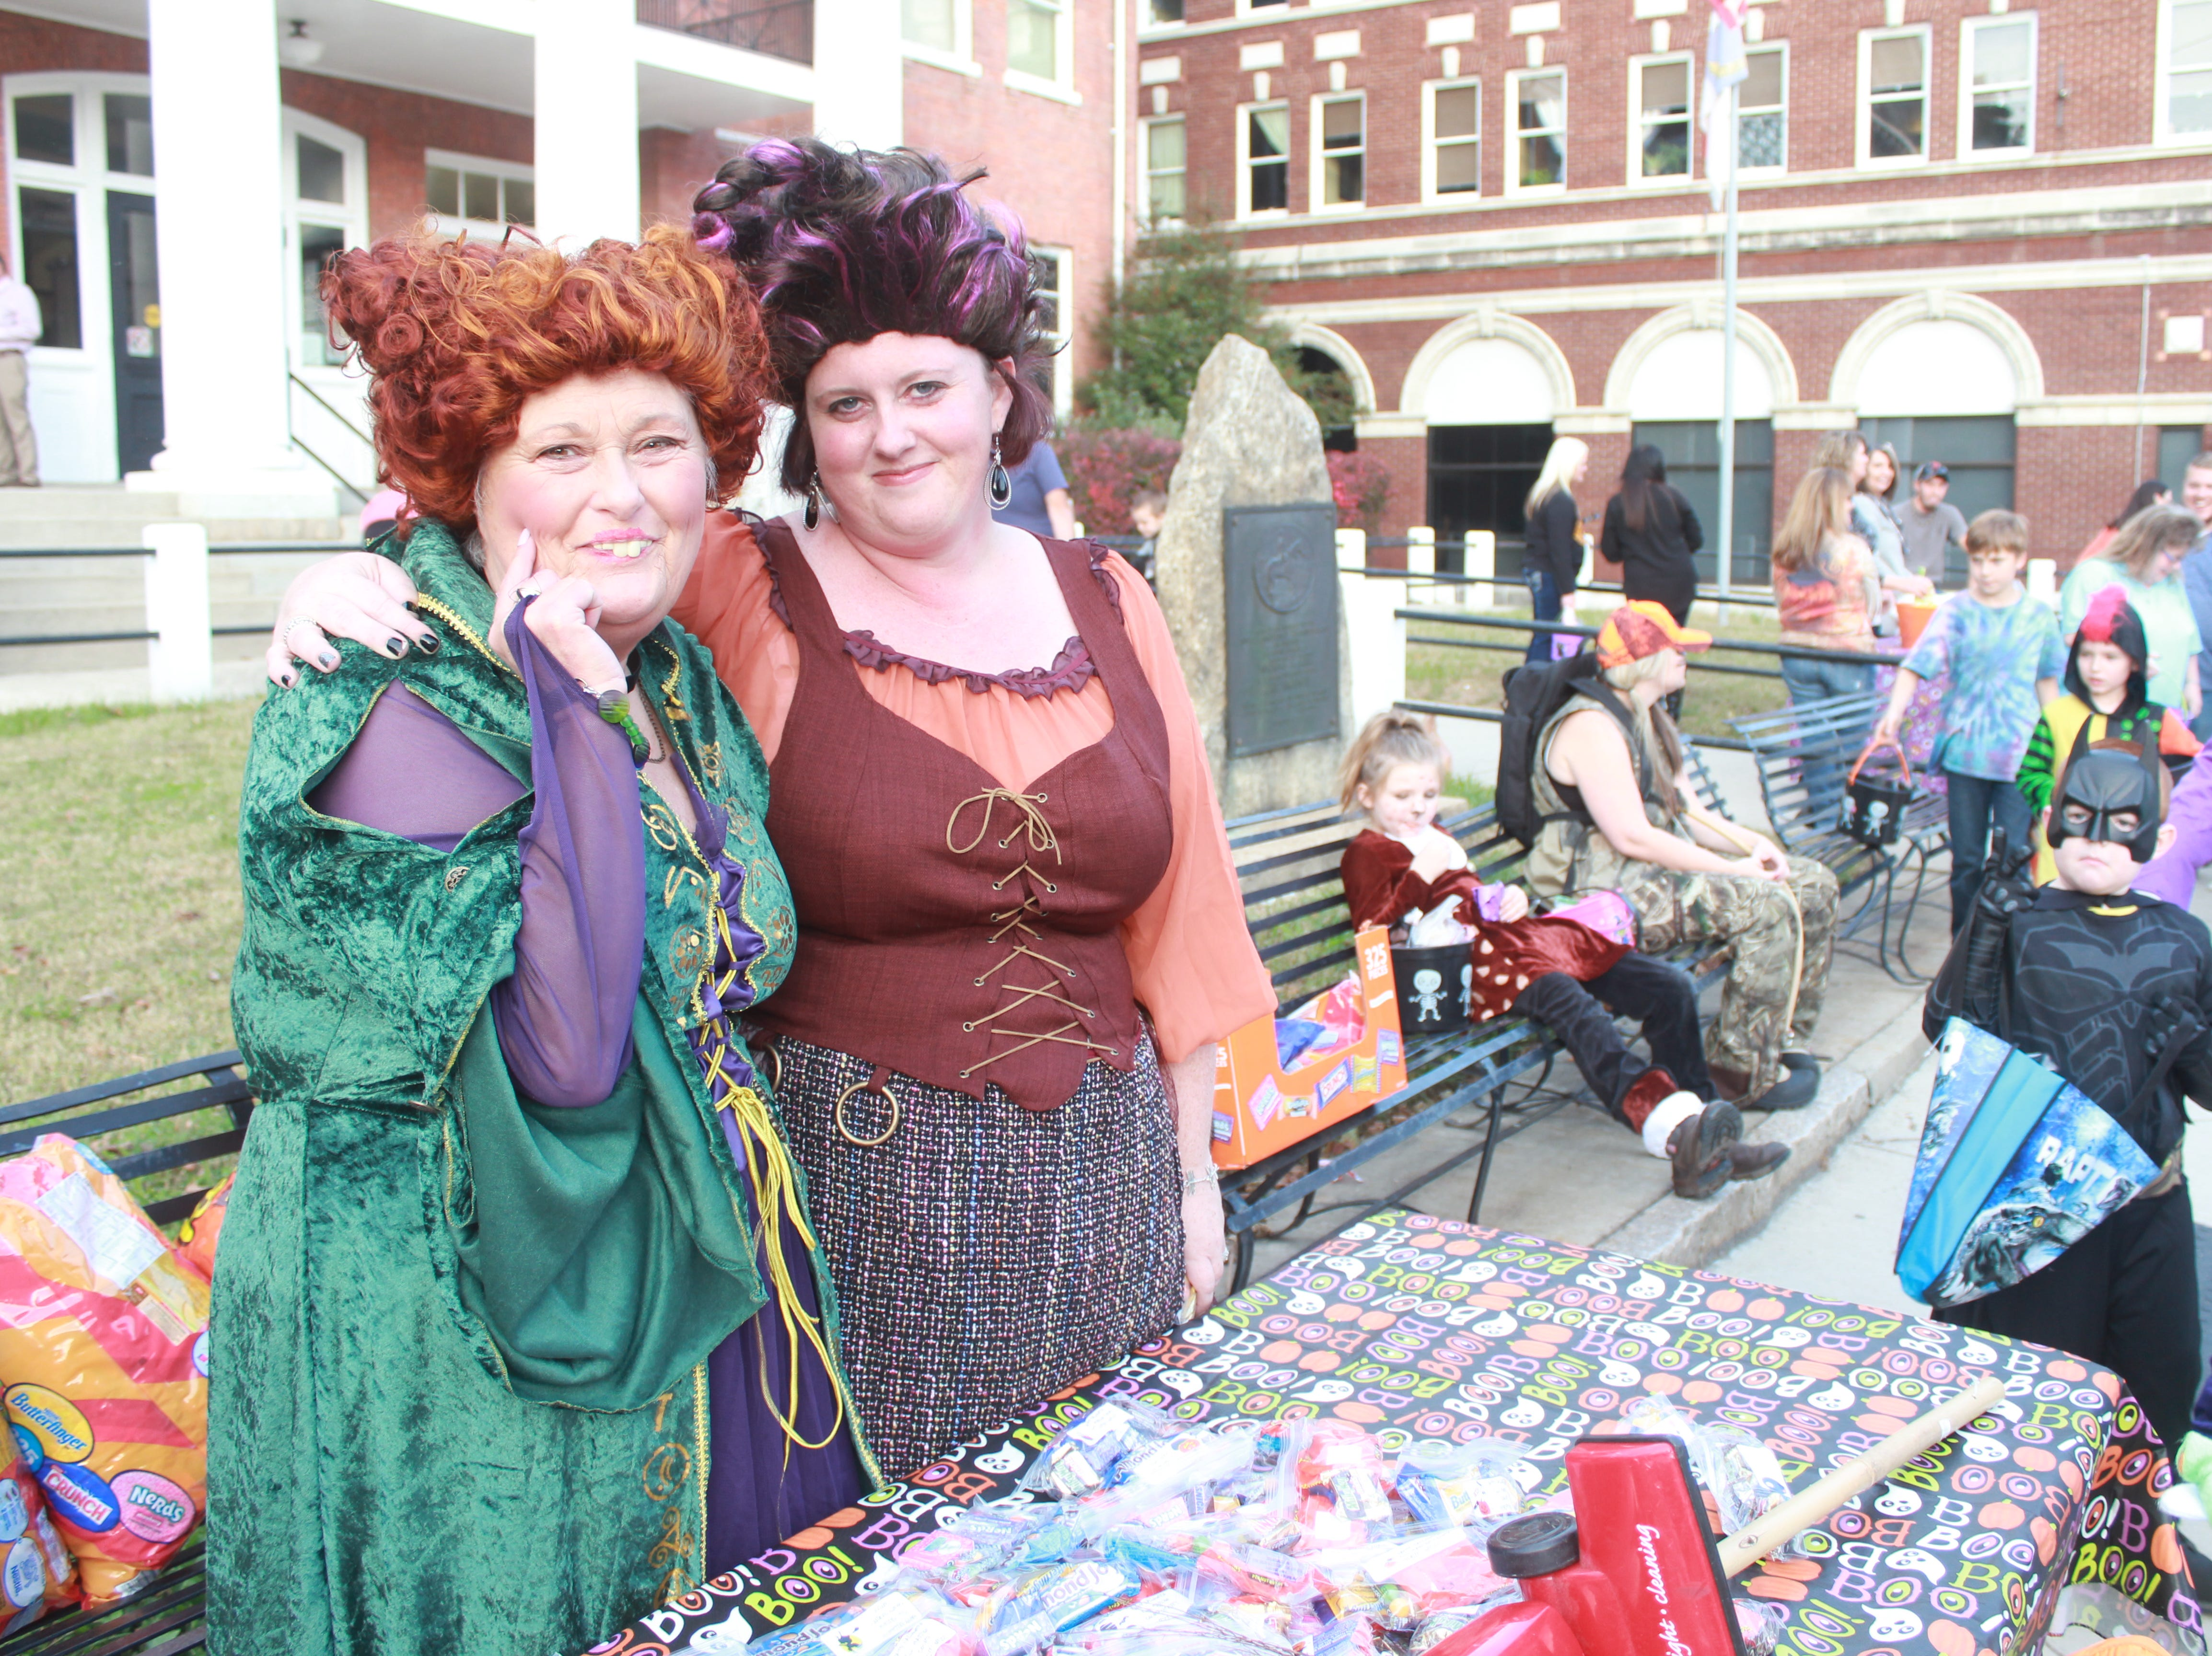 Becky Hughes and Amanda Cutshaw of the Madison County Sheriff's Office enjoyed Halloween fun as the Sanderson Sisters from Hocus Pocus.